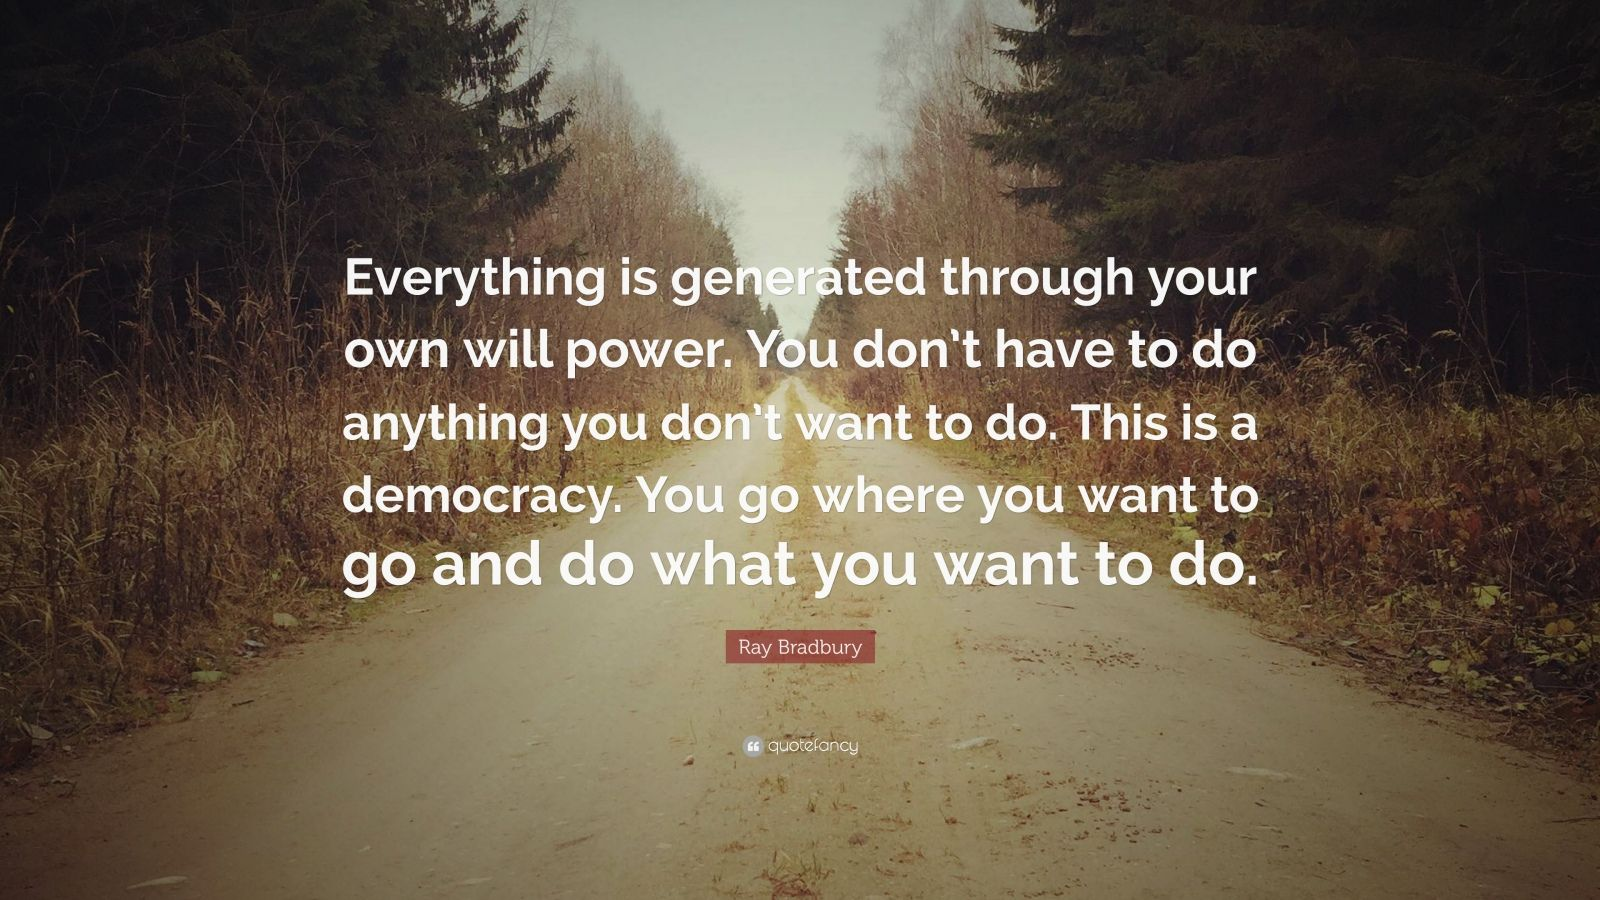 """Ray Bradbury Quote: """"Everything is generated through your own will power. You don't have to do anything you don't want to do. This is a democracy. You go where you want to go and do what you want to do."""""""